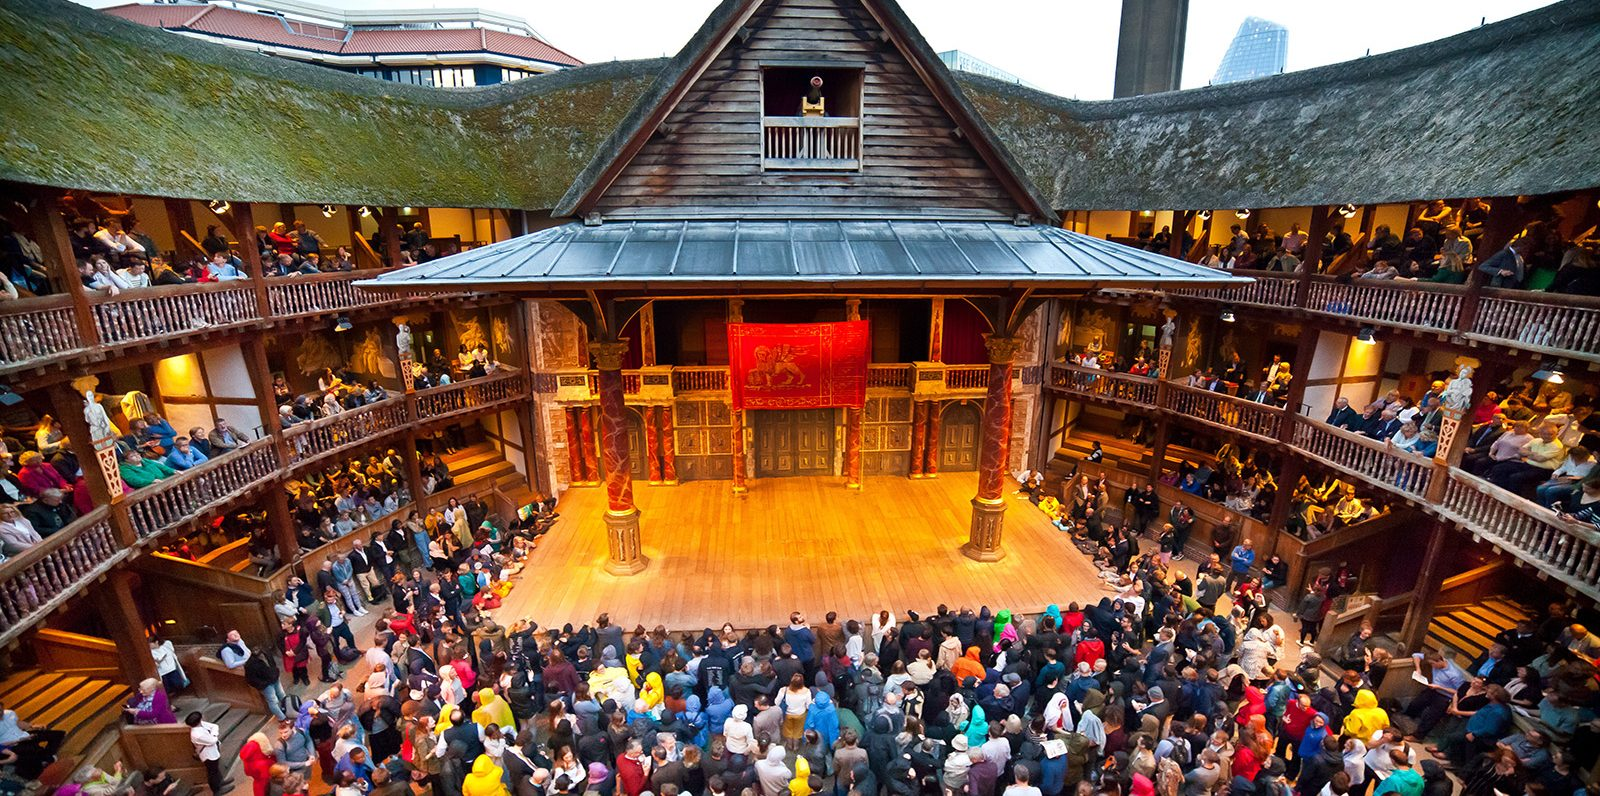 Photograph of the Globe Theatre interior and audience during a production